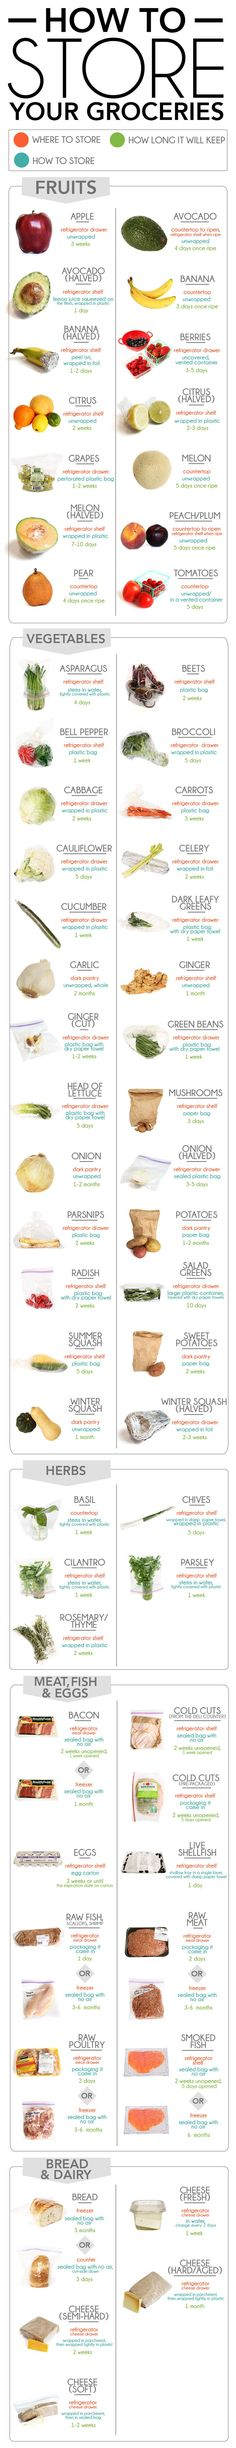 A handy guide to keep your produce fresh for longer.